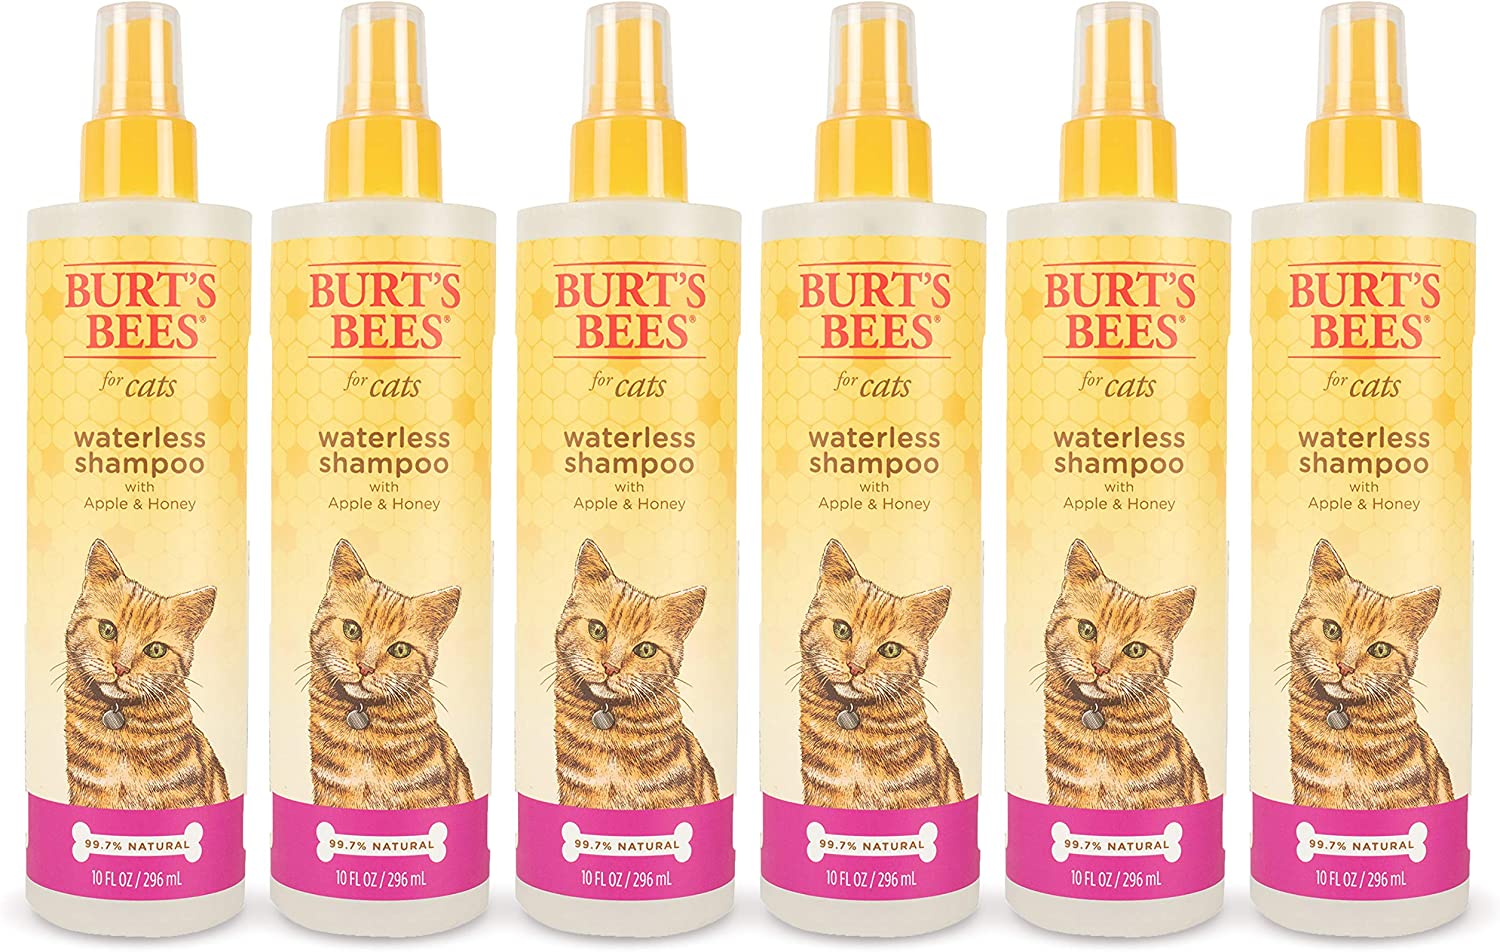 Burt's Bees for Cats Waterless Shampoo with Apple & Honey   Dry Shampoo for Cats   Waterless Cat Shampoo Spray   Cruelty Free, Sulfate & Paraben Free, pH Balanced for Cats, 10 Oz- 6 Pack : Pet Supplies